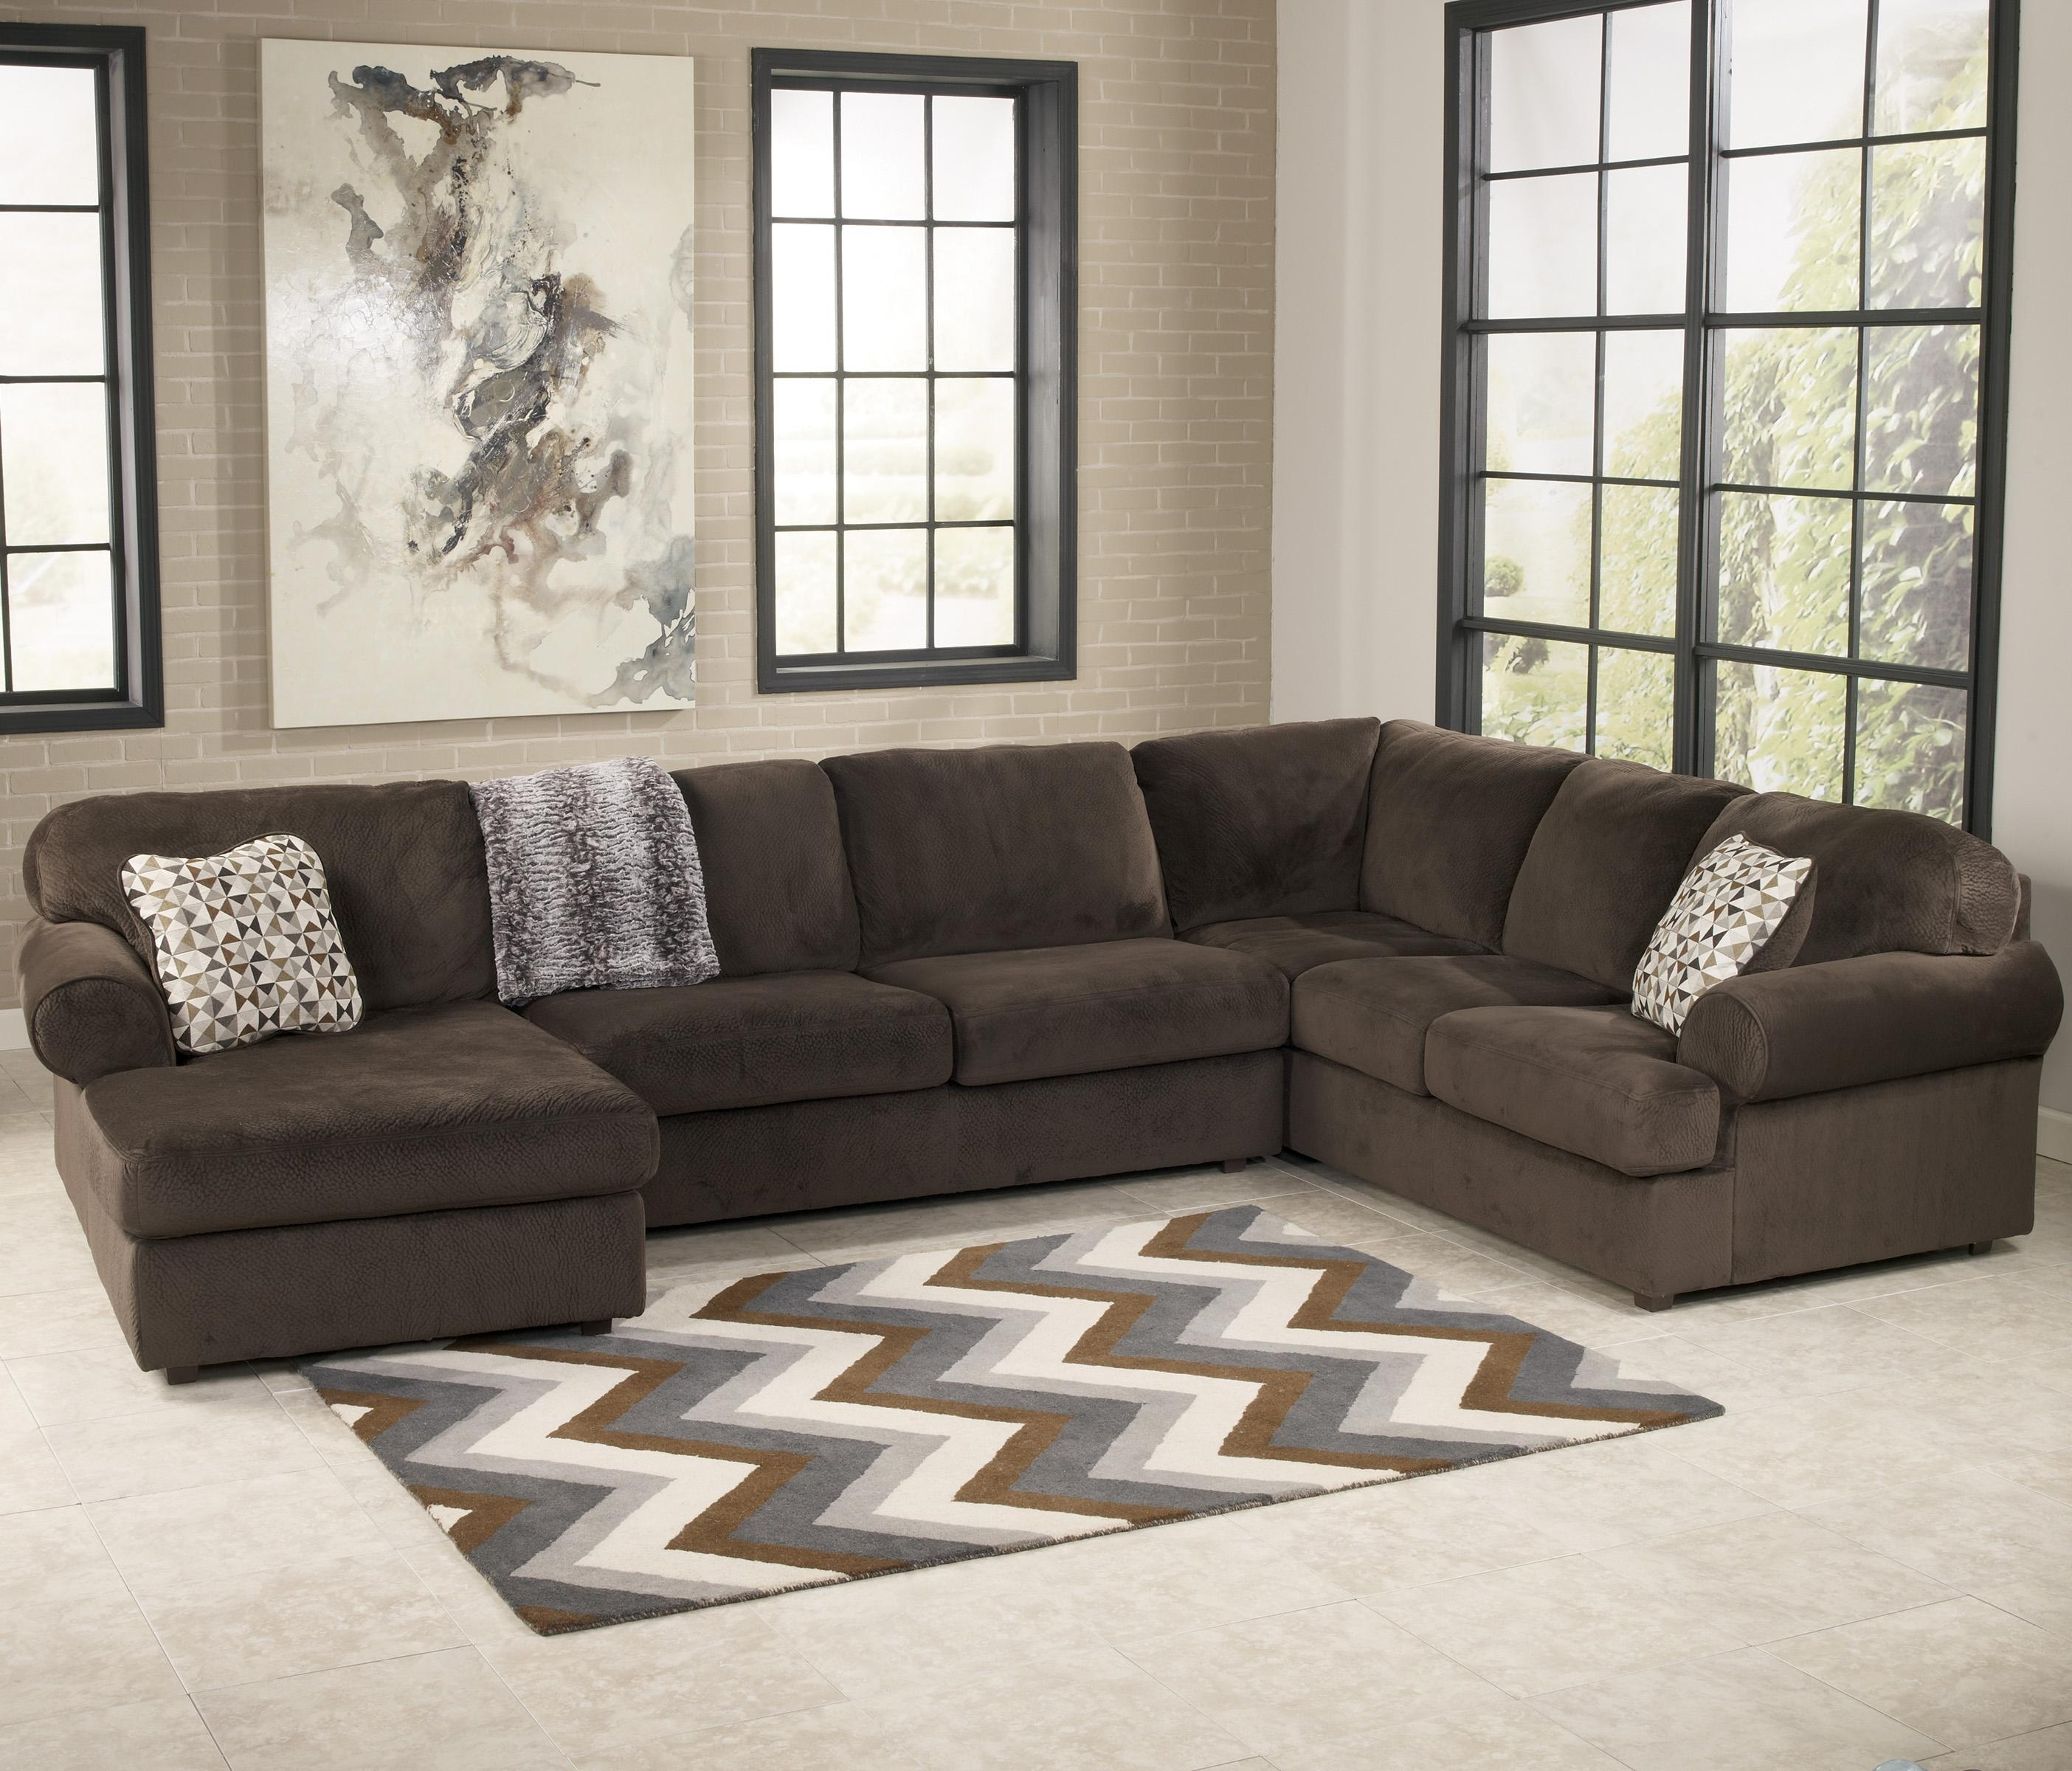 Signature Designashley Jessa Place - Chocolate Casual Sectional for Chocolate Sectional Sofas (Image 12 of 15)